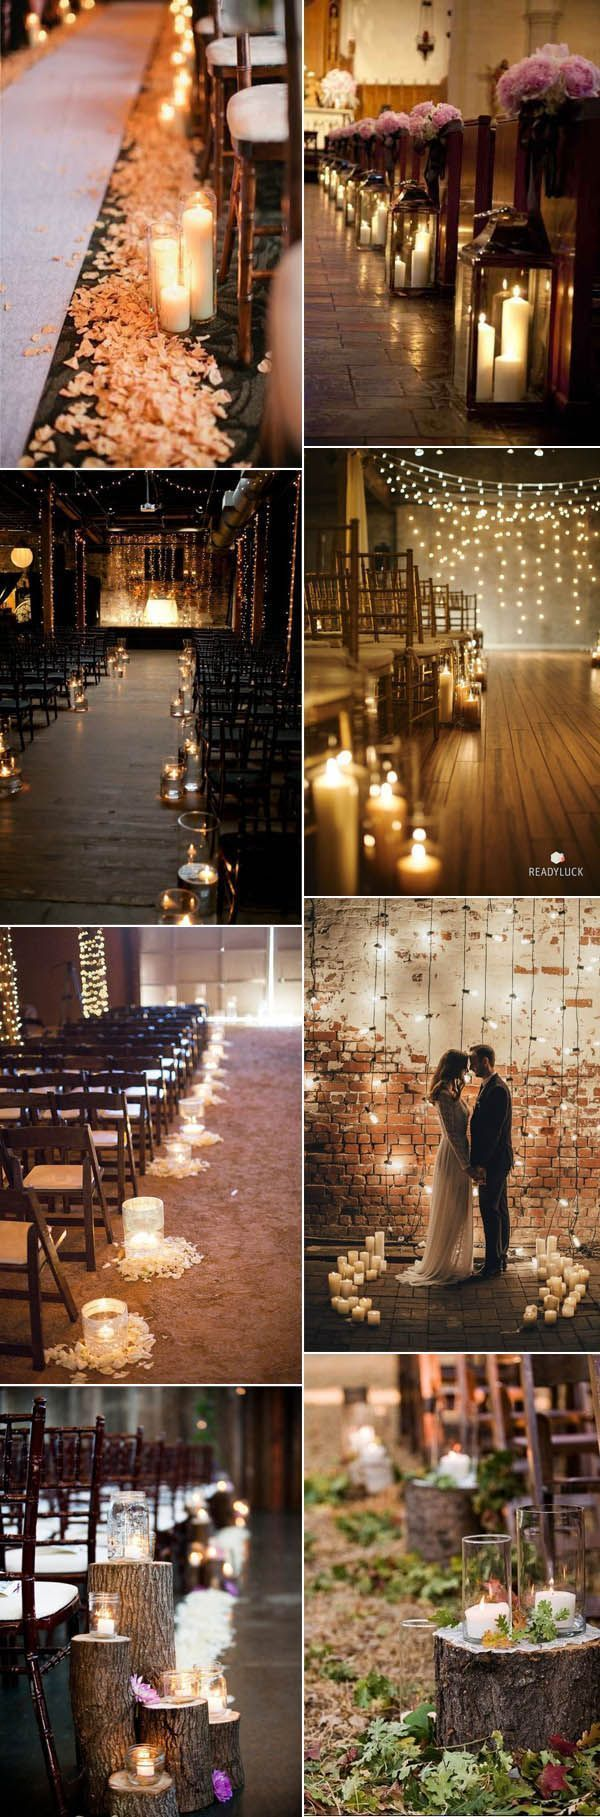 Outdoor wedding decor lights   Fancy Candlelight Ideas to Add Romance to Your Weddings